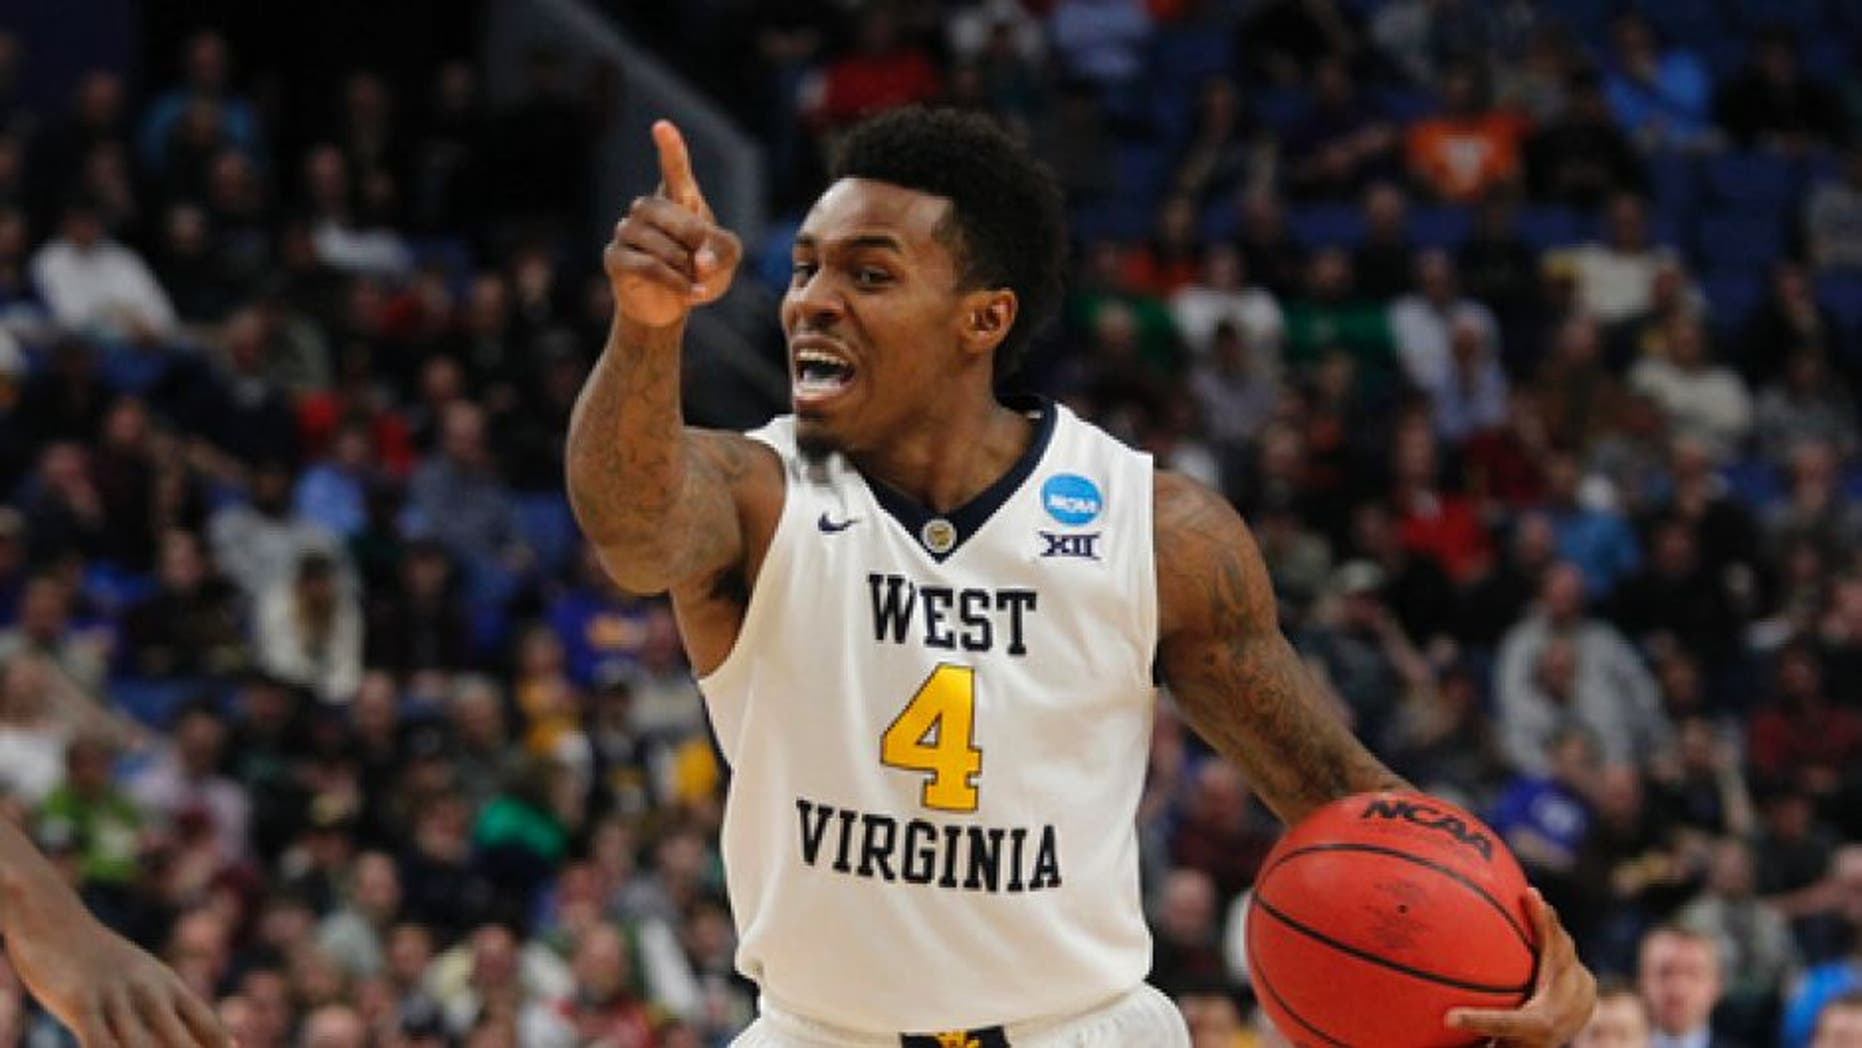 West Virginia guard Dexter Miles Jr. (4) directs his teammates during the second half of a first-round men's college basketball game against Bucknell in the NCAA Tournament, Thursday, March 16, 2017, in Buffalo, N.Y. (AP Photo/Jeffrey T. Barnes)